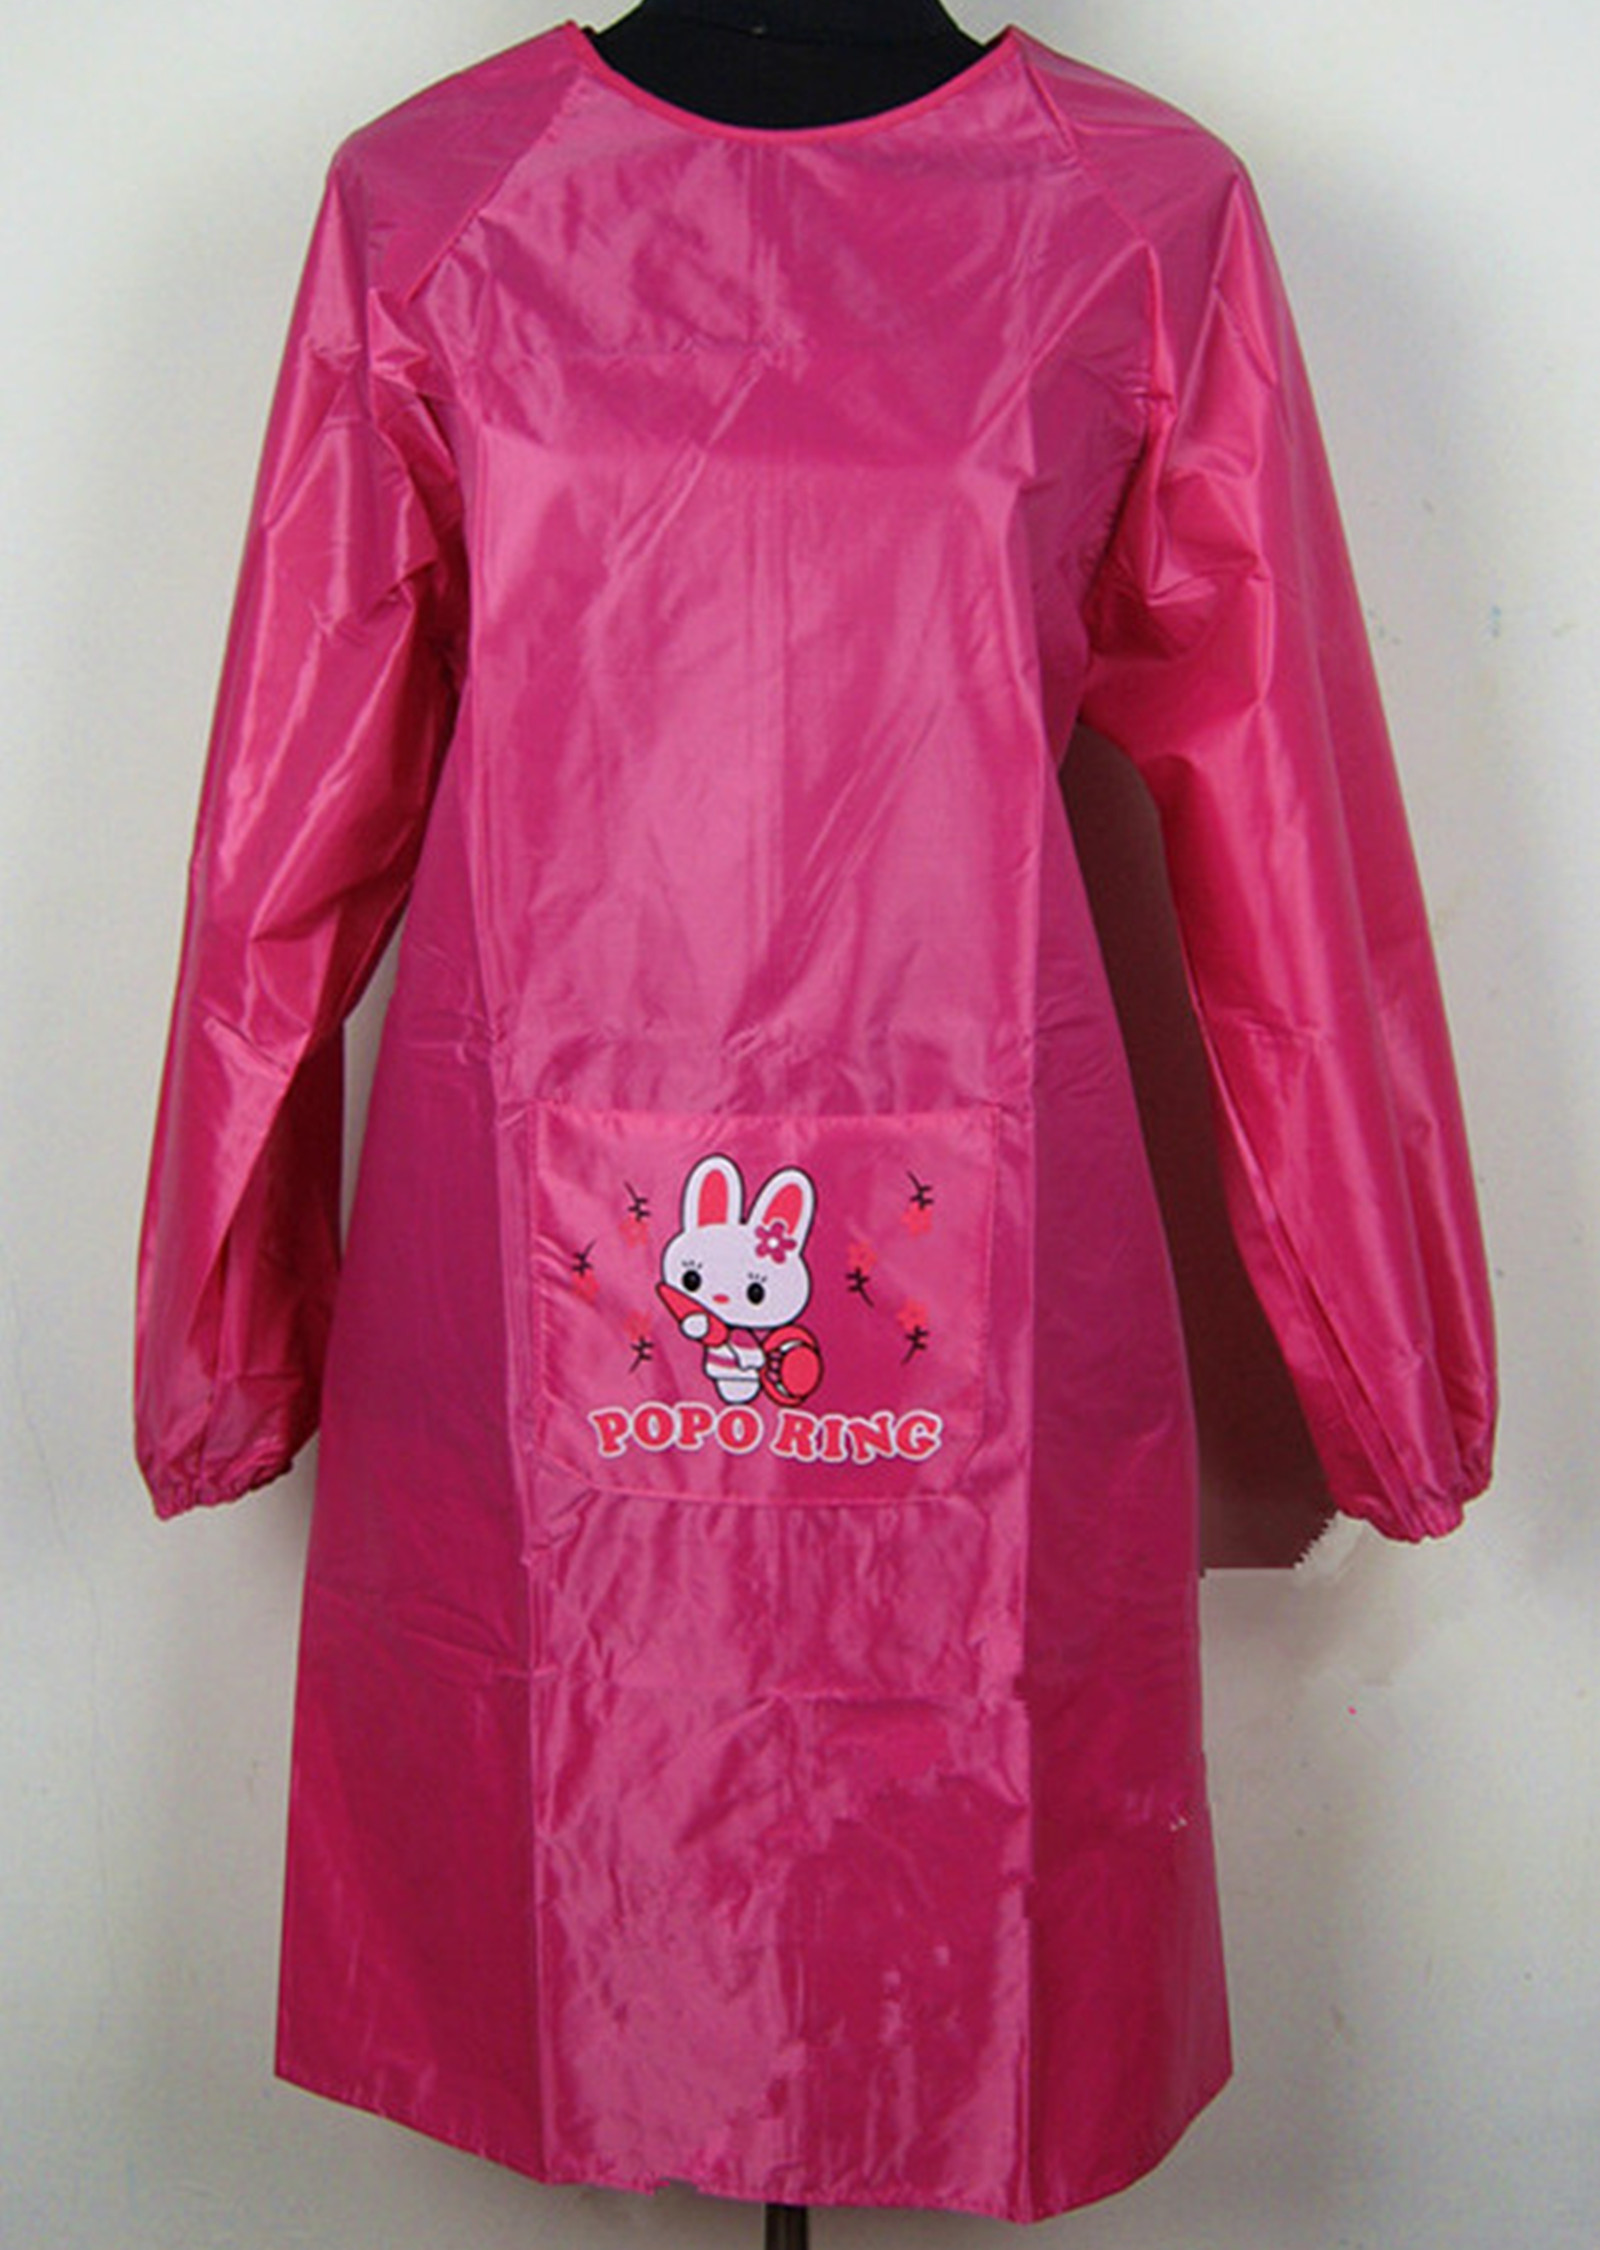 Long-sleeve adult apron waterproof gowns, pvc waterproof apron oil aprons(China (Mainland))